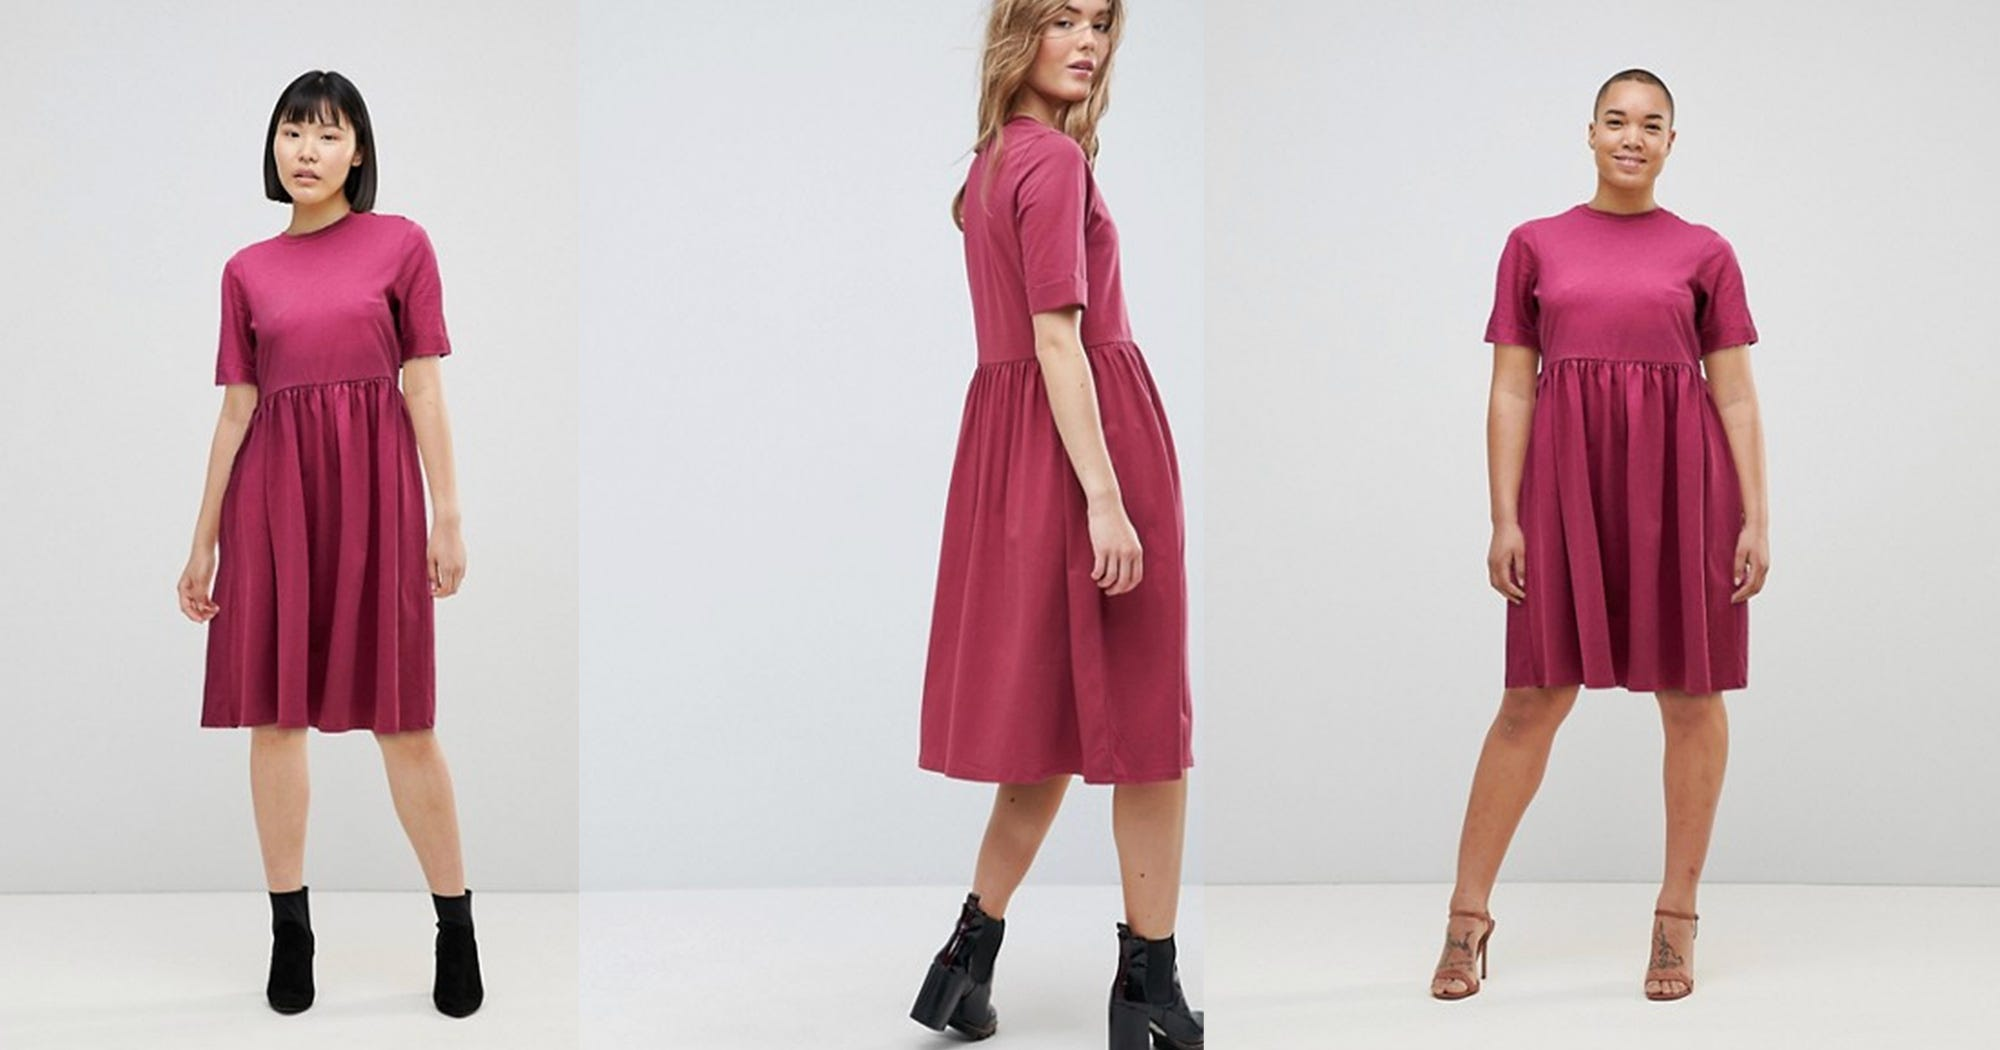 ASOS just made shopping a WHOLE lot easier